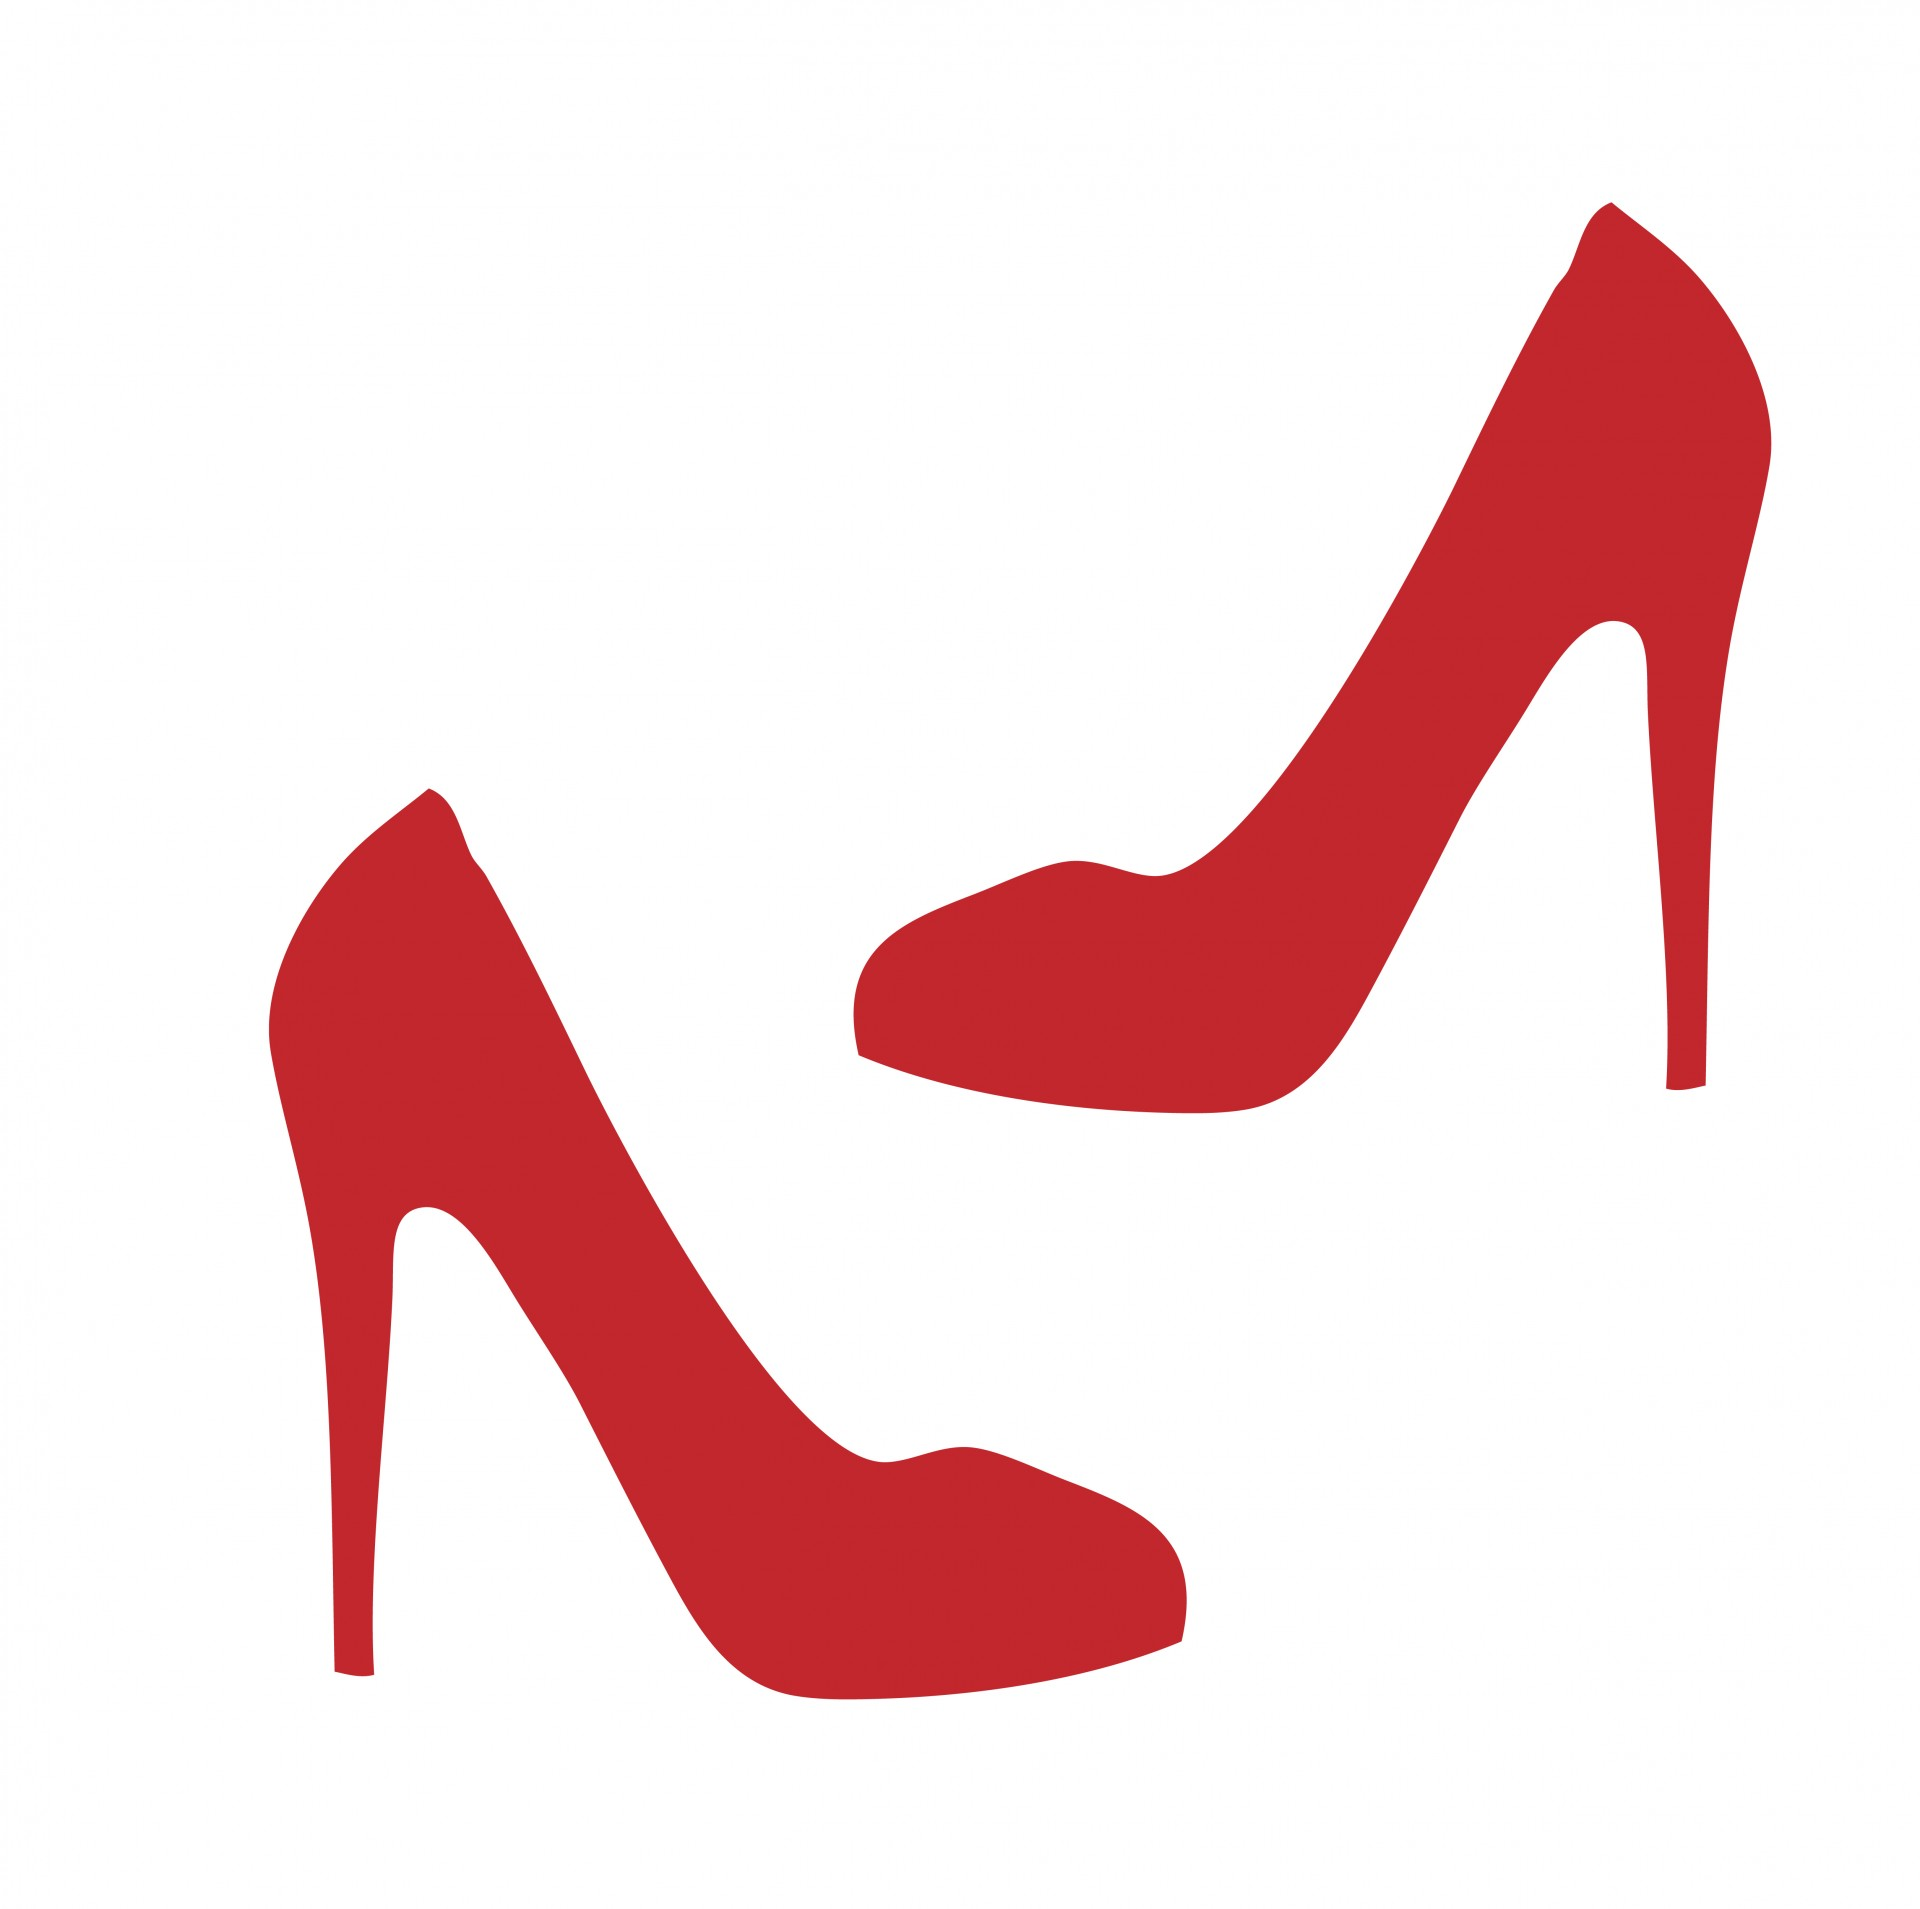 Stiletto heel clip art.